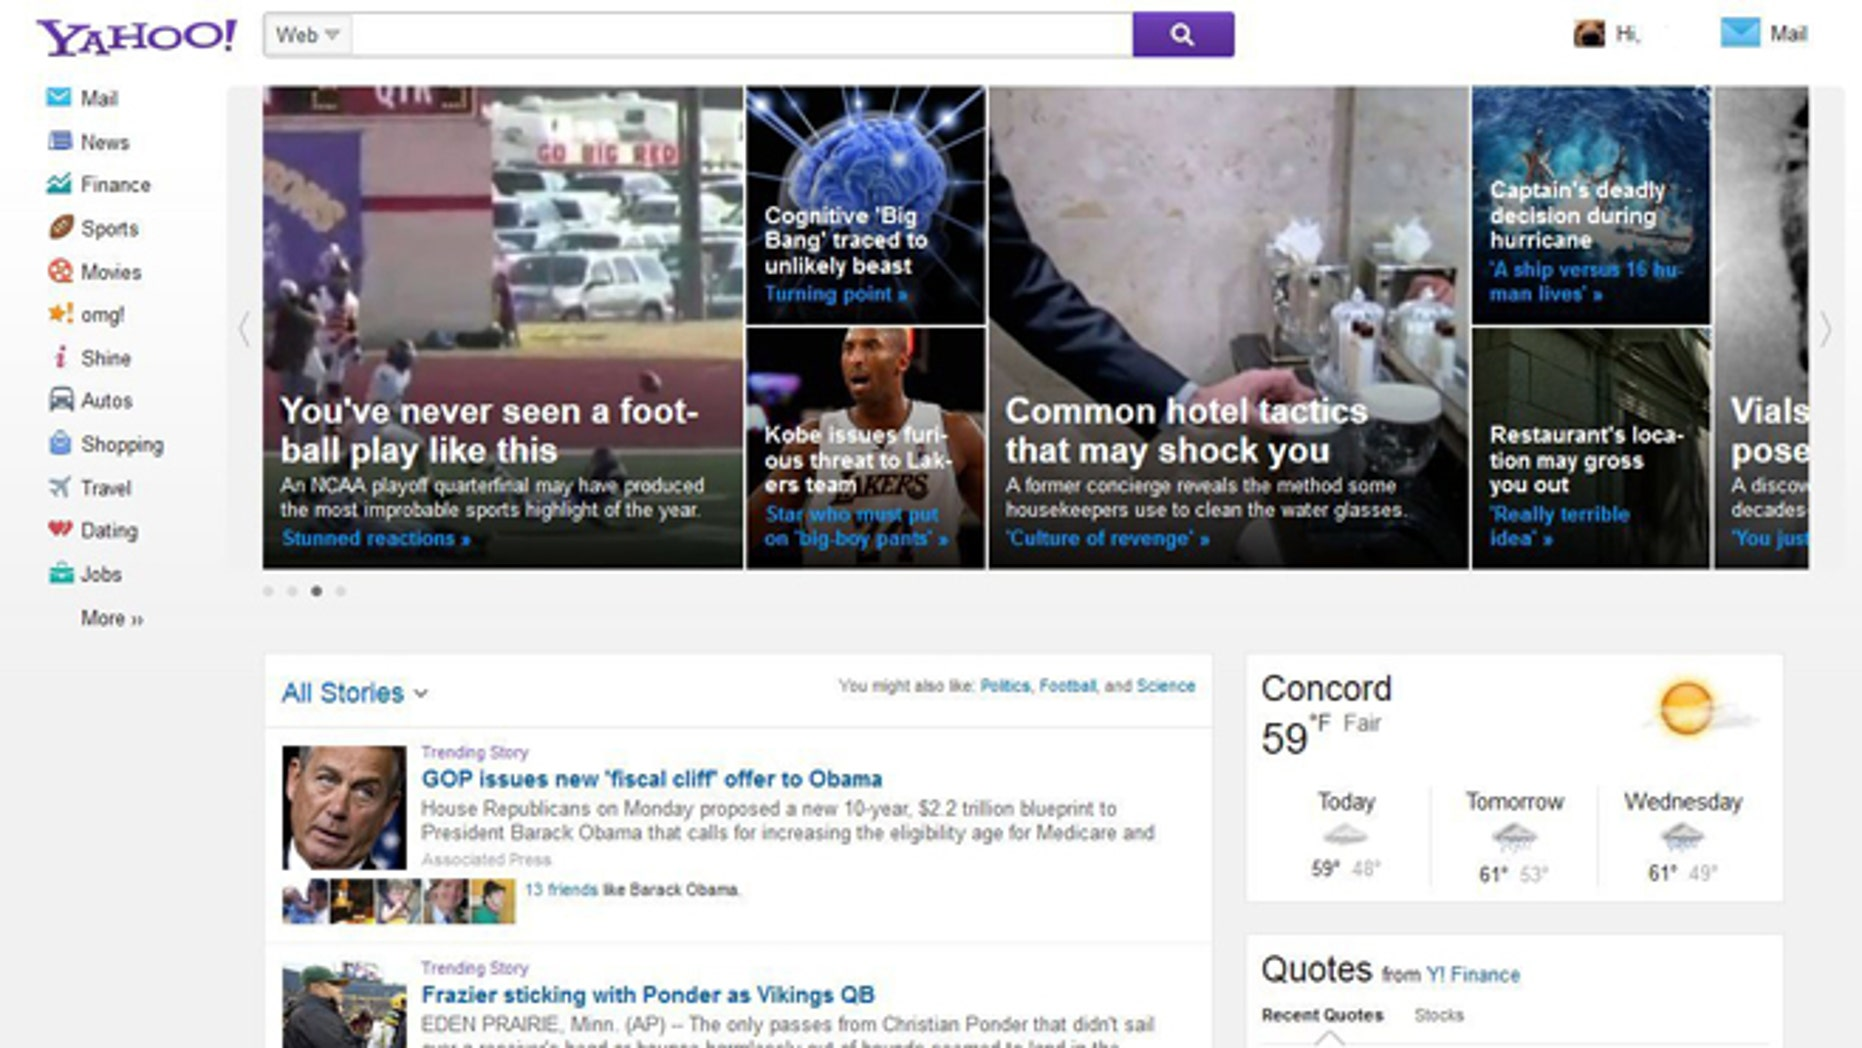 A new Yahoo homepage will boast an image-heavy tile layout, according to AllThingsD.com.